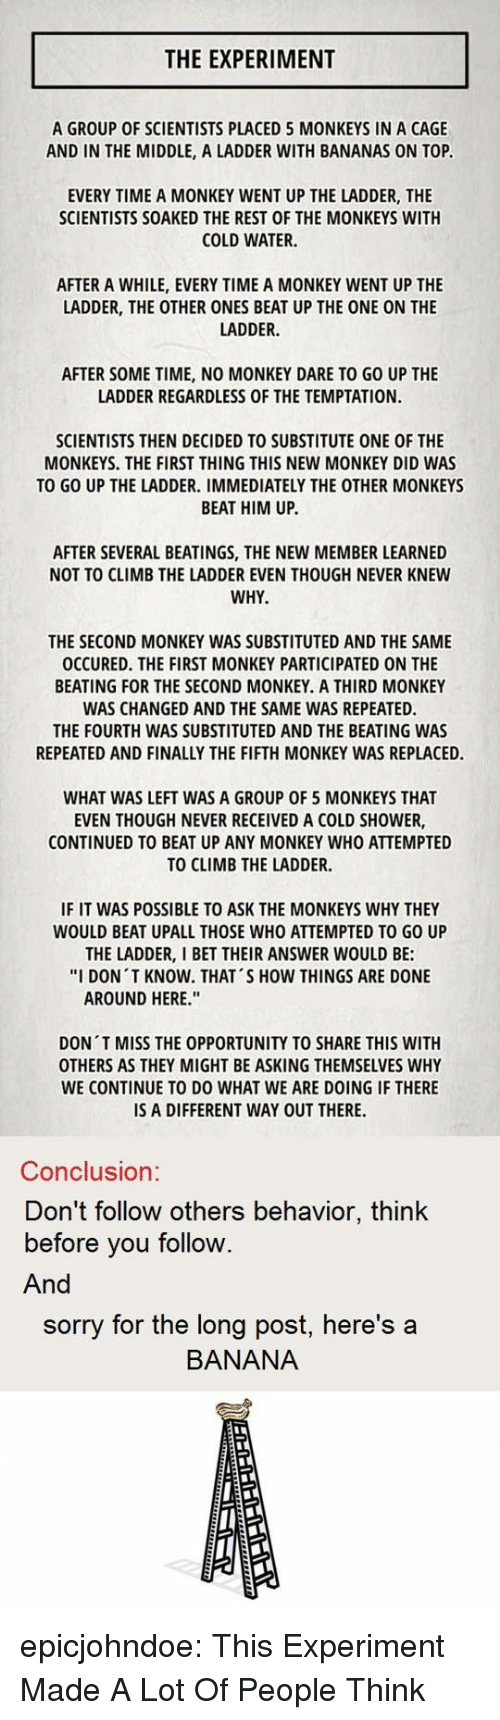 """Repeated: THE EXPERIMENT  A GROUP OF SCIENTISTS PLACED 5 MONKEYS IN A CAGE  AND IN THE MIDDLE, A LADDER WITH BANANAS ON TOP  EVERY TIME A MONKEY WENT UP THE LADDER, THE  SCIENTISTS SOAKED THE REST OF THE MONKEYS WITH  COLD WATER.  AFTER A WHILE, EVERY TIME A MONKEY WENT UP THE  LADDER, THE OTHER ONES BEAT UP THE ONE ON THE  LADDER.  AFTER SOME TIME, NO MONKEY DARE TO GO UP THE  LADDER REGARDLESS OF THE TEMPTATION.  SCIENTISTS THEN DECIDED TO SUBSTITUTE ONE OF THE  MONKEYS. THE FIRST THING THIS NEW MONKEY DID WAS  TO GO UP THE LADDER. IMMEDIATELY THE OTHER MONKEYS  BEAT HIM UP.  AFTER SEVERAL BEATINGS, THE NEW MEMBER LEARNED  NOT TO CLIMB THE LADDER EVEN THOUGH NEVER KNEW  WHY  THE SECOND MONKEY WAS SUBSTITUTED AND THE SAME  OCCURED. THE FIRST MONKEY PARTICIPATED ON THE  BEATING FOR THE SECOND MONKEY. A THIRD MONKEY  WAS CHANGED AND THE SAME WAS REPEATED.  THE FOURTH WAS SUBSTITUTED AND THE BEATING WAS  REPEATED AND FINALLY THE FIFTH MONKEY WAS REPLACED.  WHAT WAS LEFT WAS A GROUP OF 5 MONKEYS THAT  EVEN THOUGH NEVER RECEIVED A COLD SHOWER,  CONTINUED TO BEAT UP ANY MONKEY WHO ATTEMPTED  TO CLIMB THE LADDER.  IF IT WAS POSSIBLE TO ASK THE MONKEYS WHY THEY  WOULD BEAT UPALL THOSE WHO ATTEMPTED TO GO UP  THE LADDER, I BET THEIR ANSWER WOULD BE:  """"I DON T KNOW. THAT'S HOW THINGS ARE DONE  AROUND HERE.""""  DON T MISS THE OPPORTUNITY TO SHARE THIS WITH  OTHERS AS THEY MIGHT BE ASKING THEMSELVES WHY  WE CONTINUE TO DO WHAT WE ARE DOING IF THERE  IS A DIFFERENT WAY OUT THERE.  Conclusion:  Don't follow others behavior, think  before you follow.  And  sorry for the long post, here's a  BANANA epicjohndoe:  This Experiment Made A Lot Of People Think"""